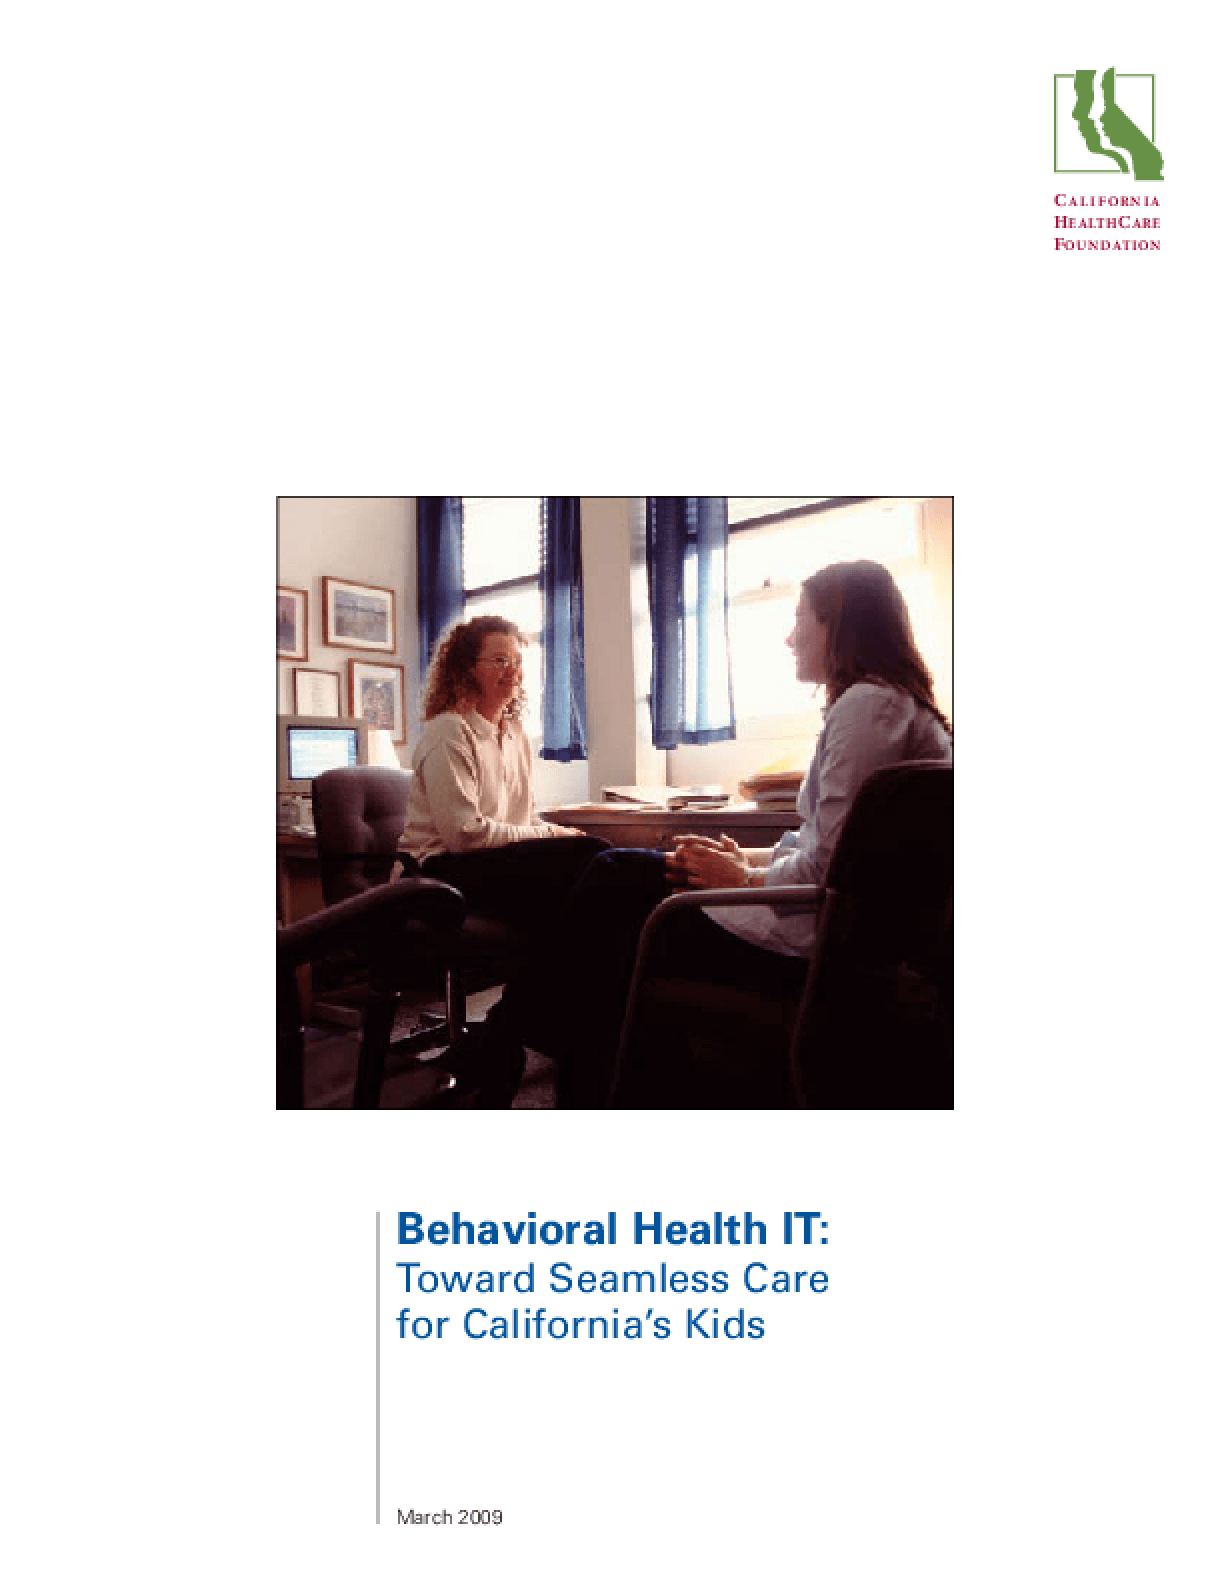 Behavioral Health IT: Toward Seamless Care for California's Kids